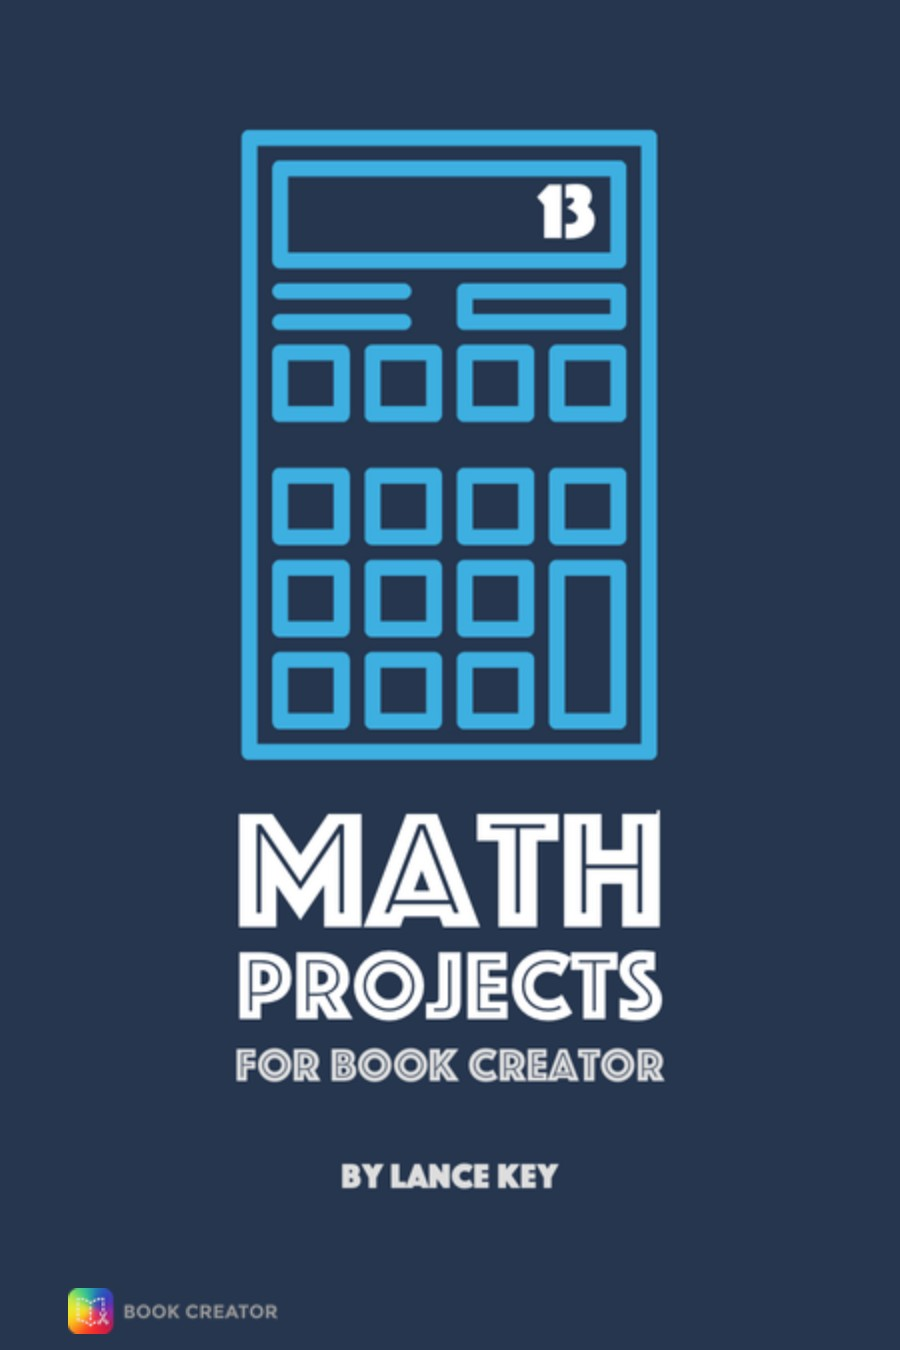 13 Math Projects for Book Creator